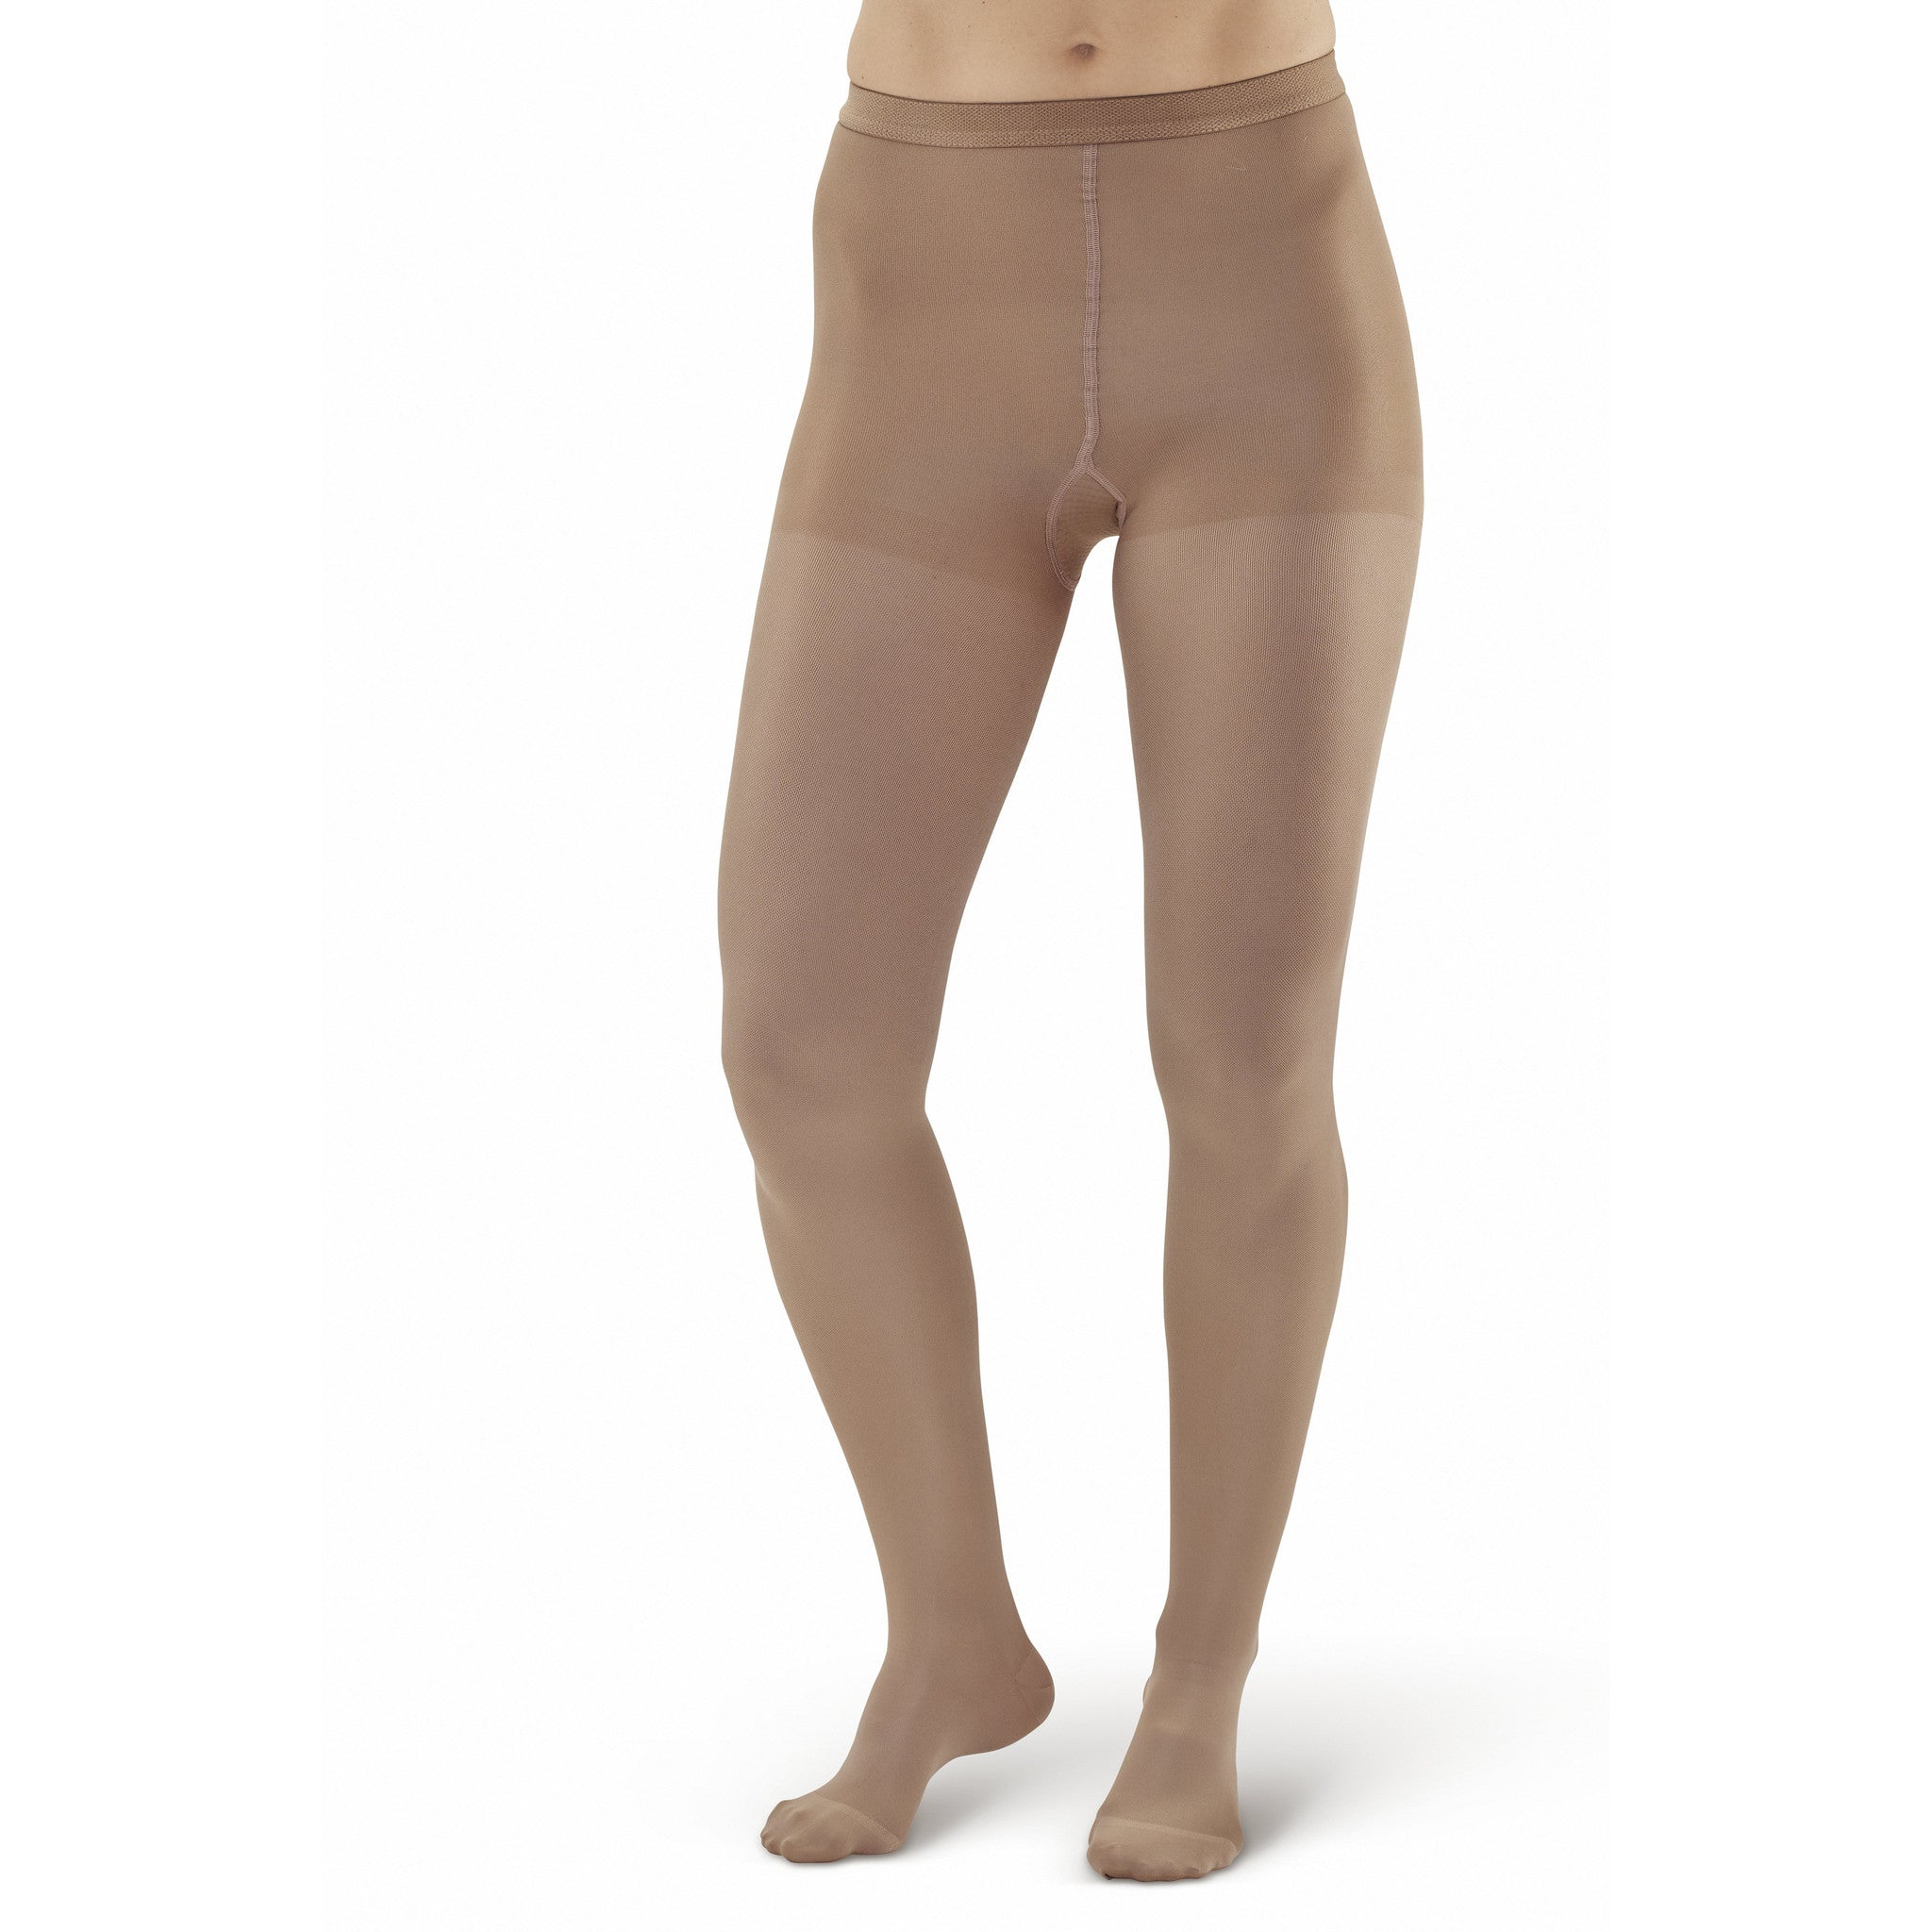 aaa23995e8 AW Style 208 Microfiber Opaque Closed Toe Pantyhose/Tights 15-20 mmHg - Sand  ...